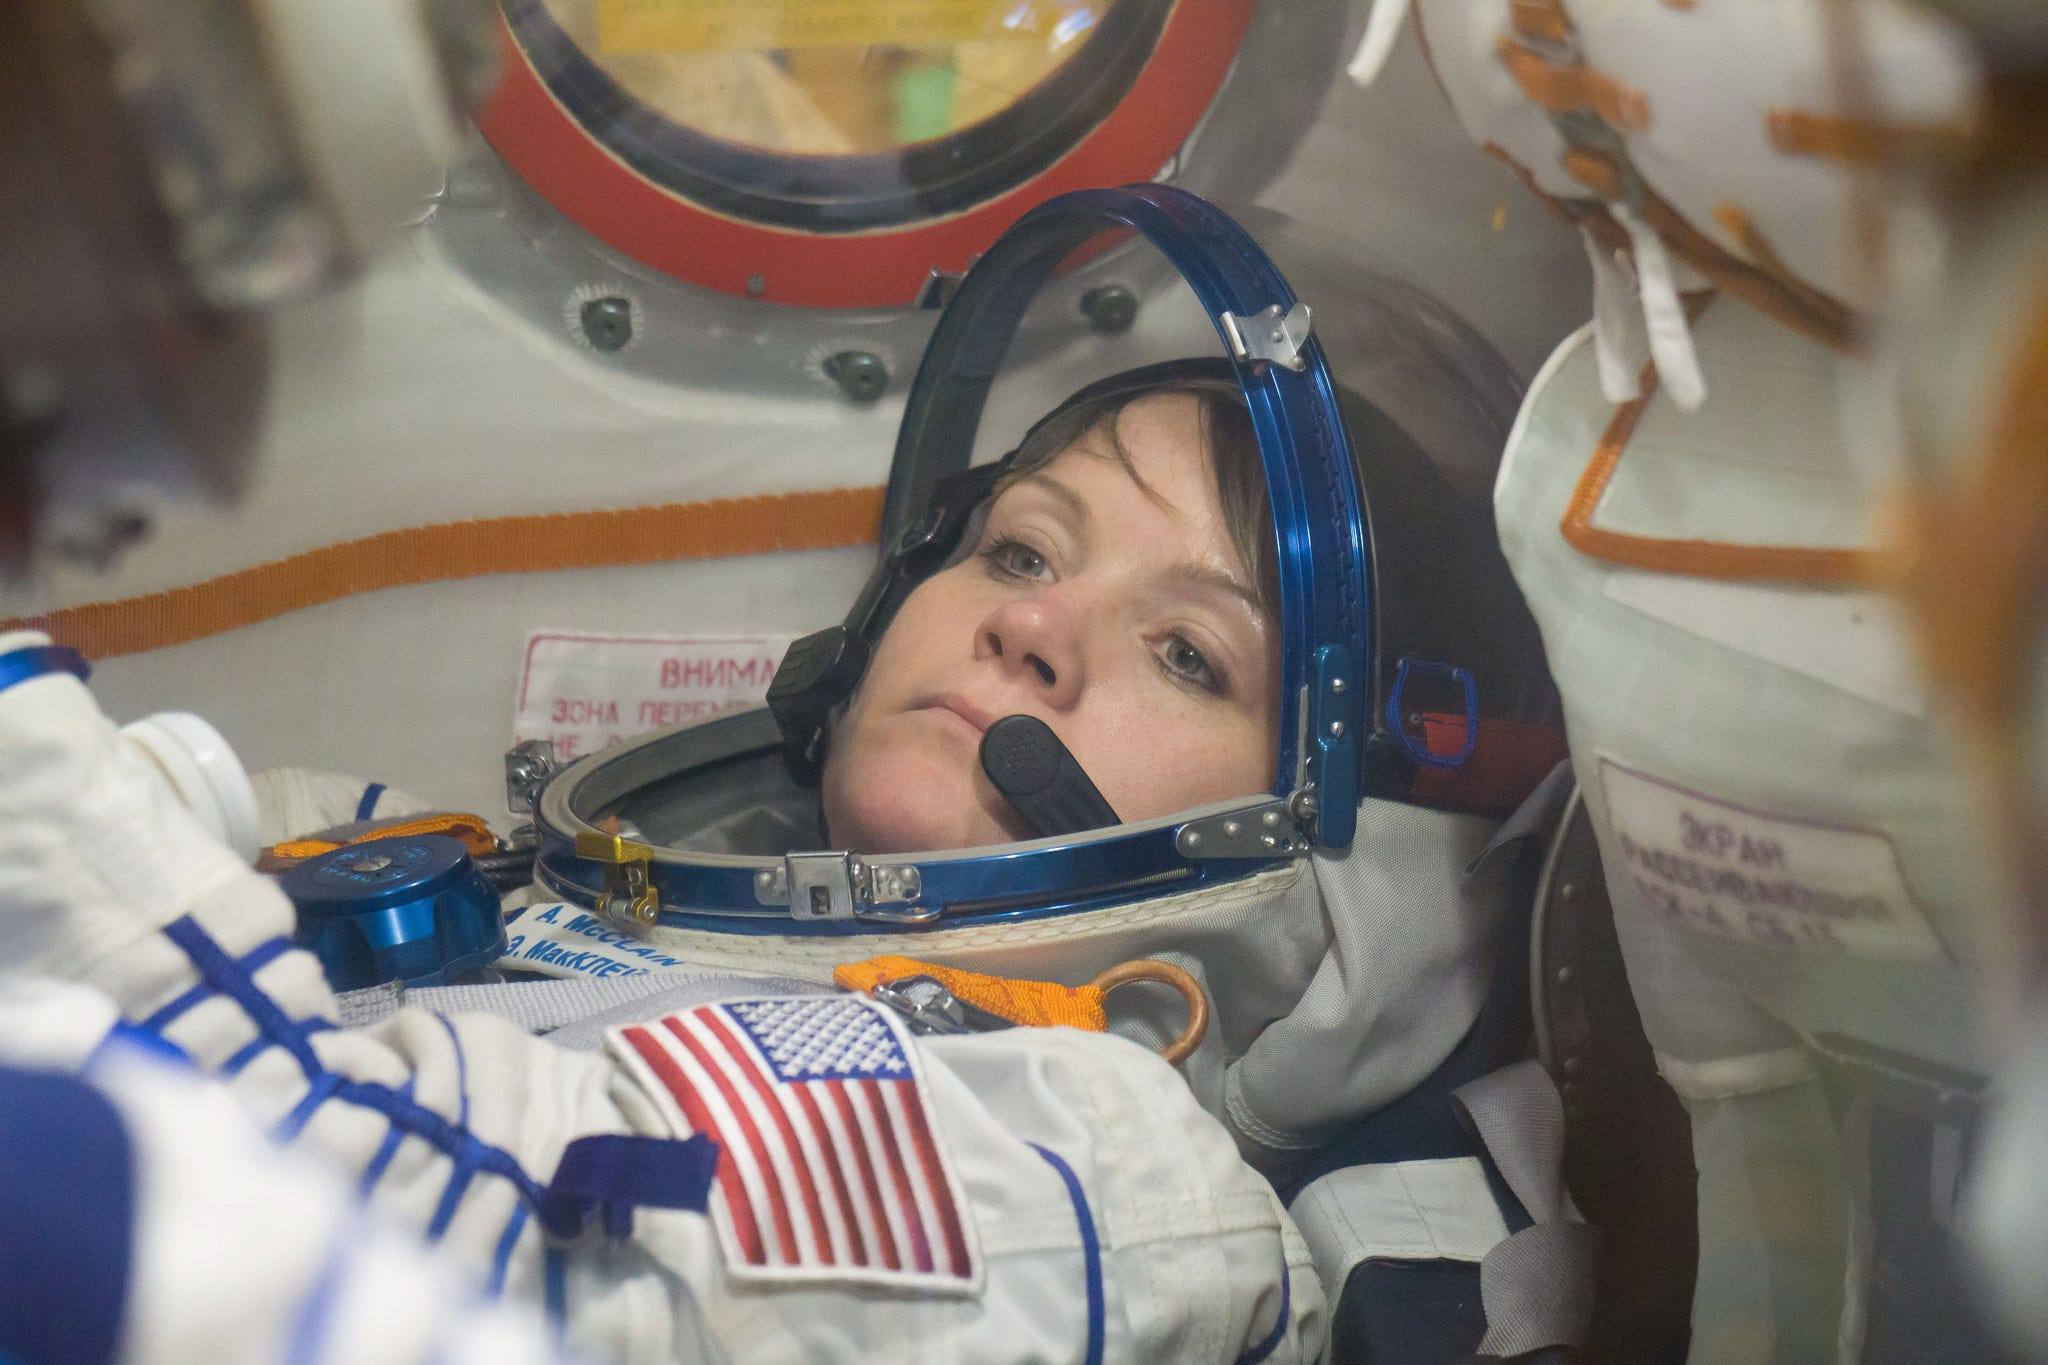 NASA: All-female spacewalk canceled due to spacesuit issues